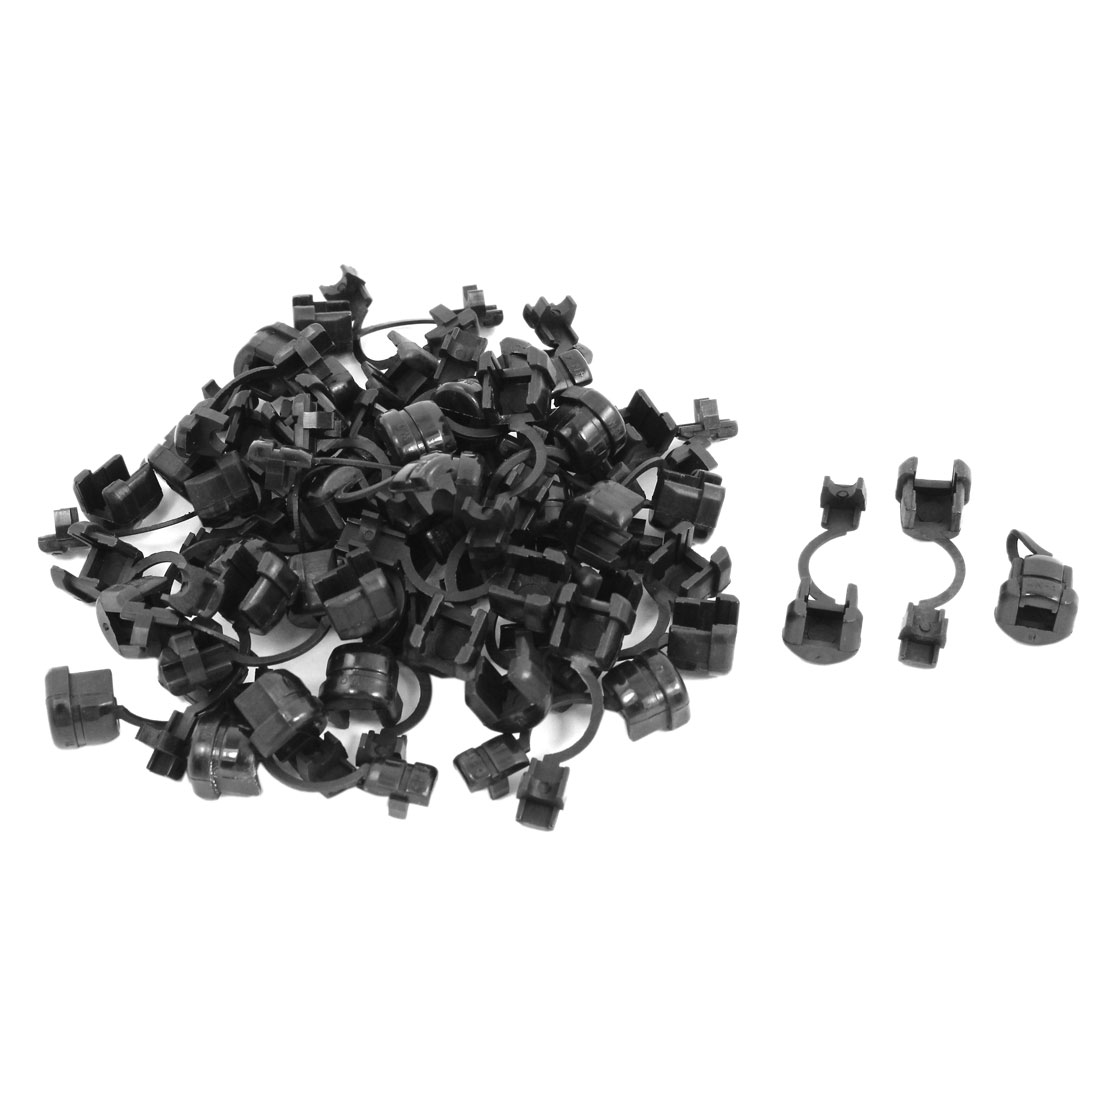 50 Pcs 4.5mm Dia Black Nylon Round Wire Cord Clip Clamp Strain Relief Bushing